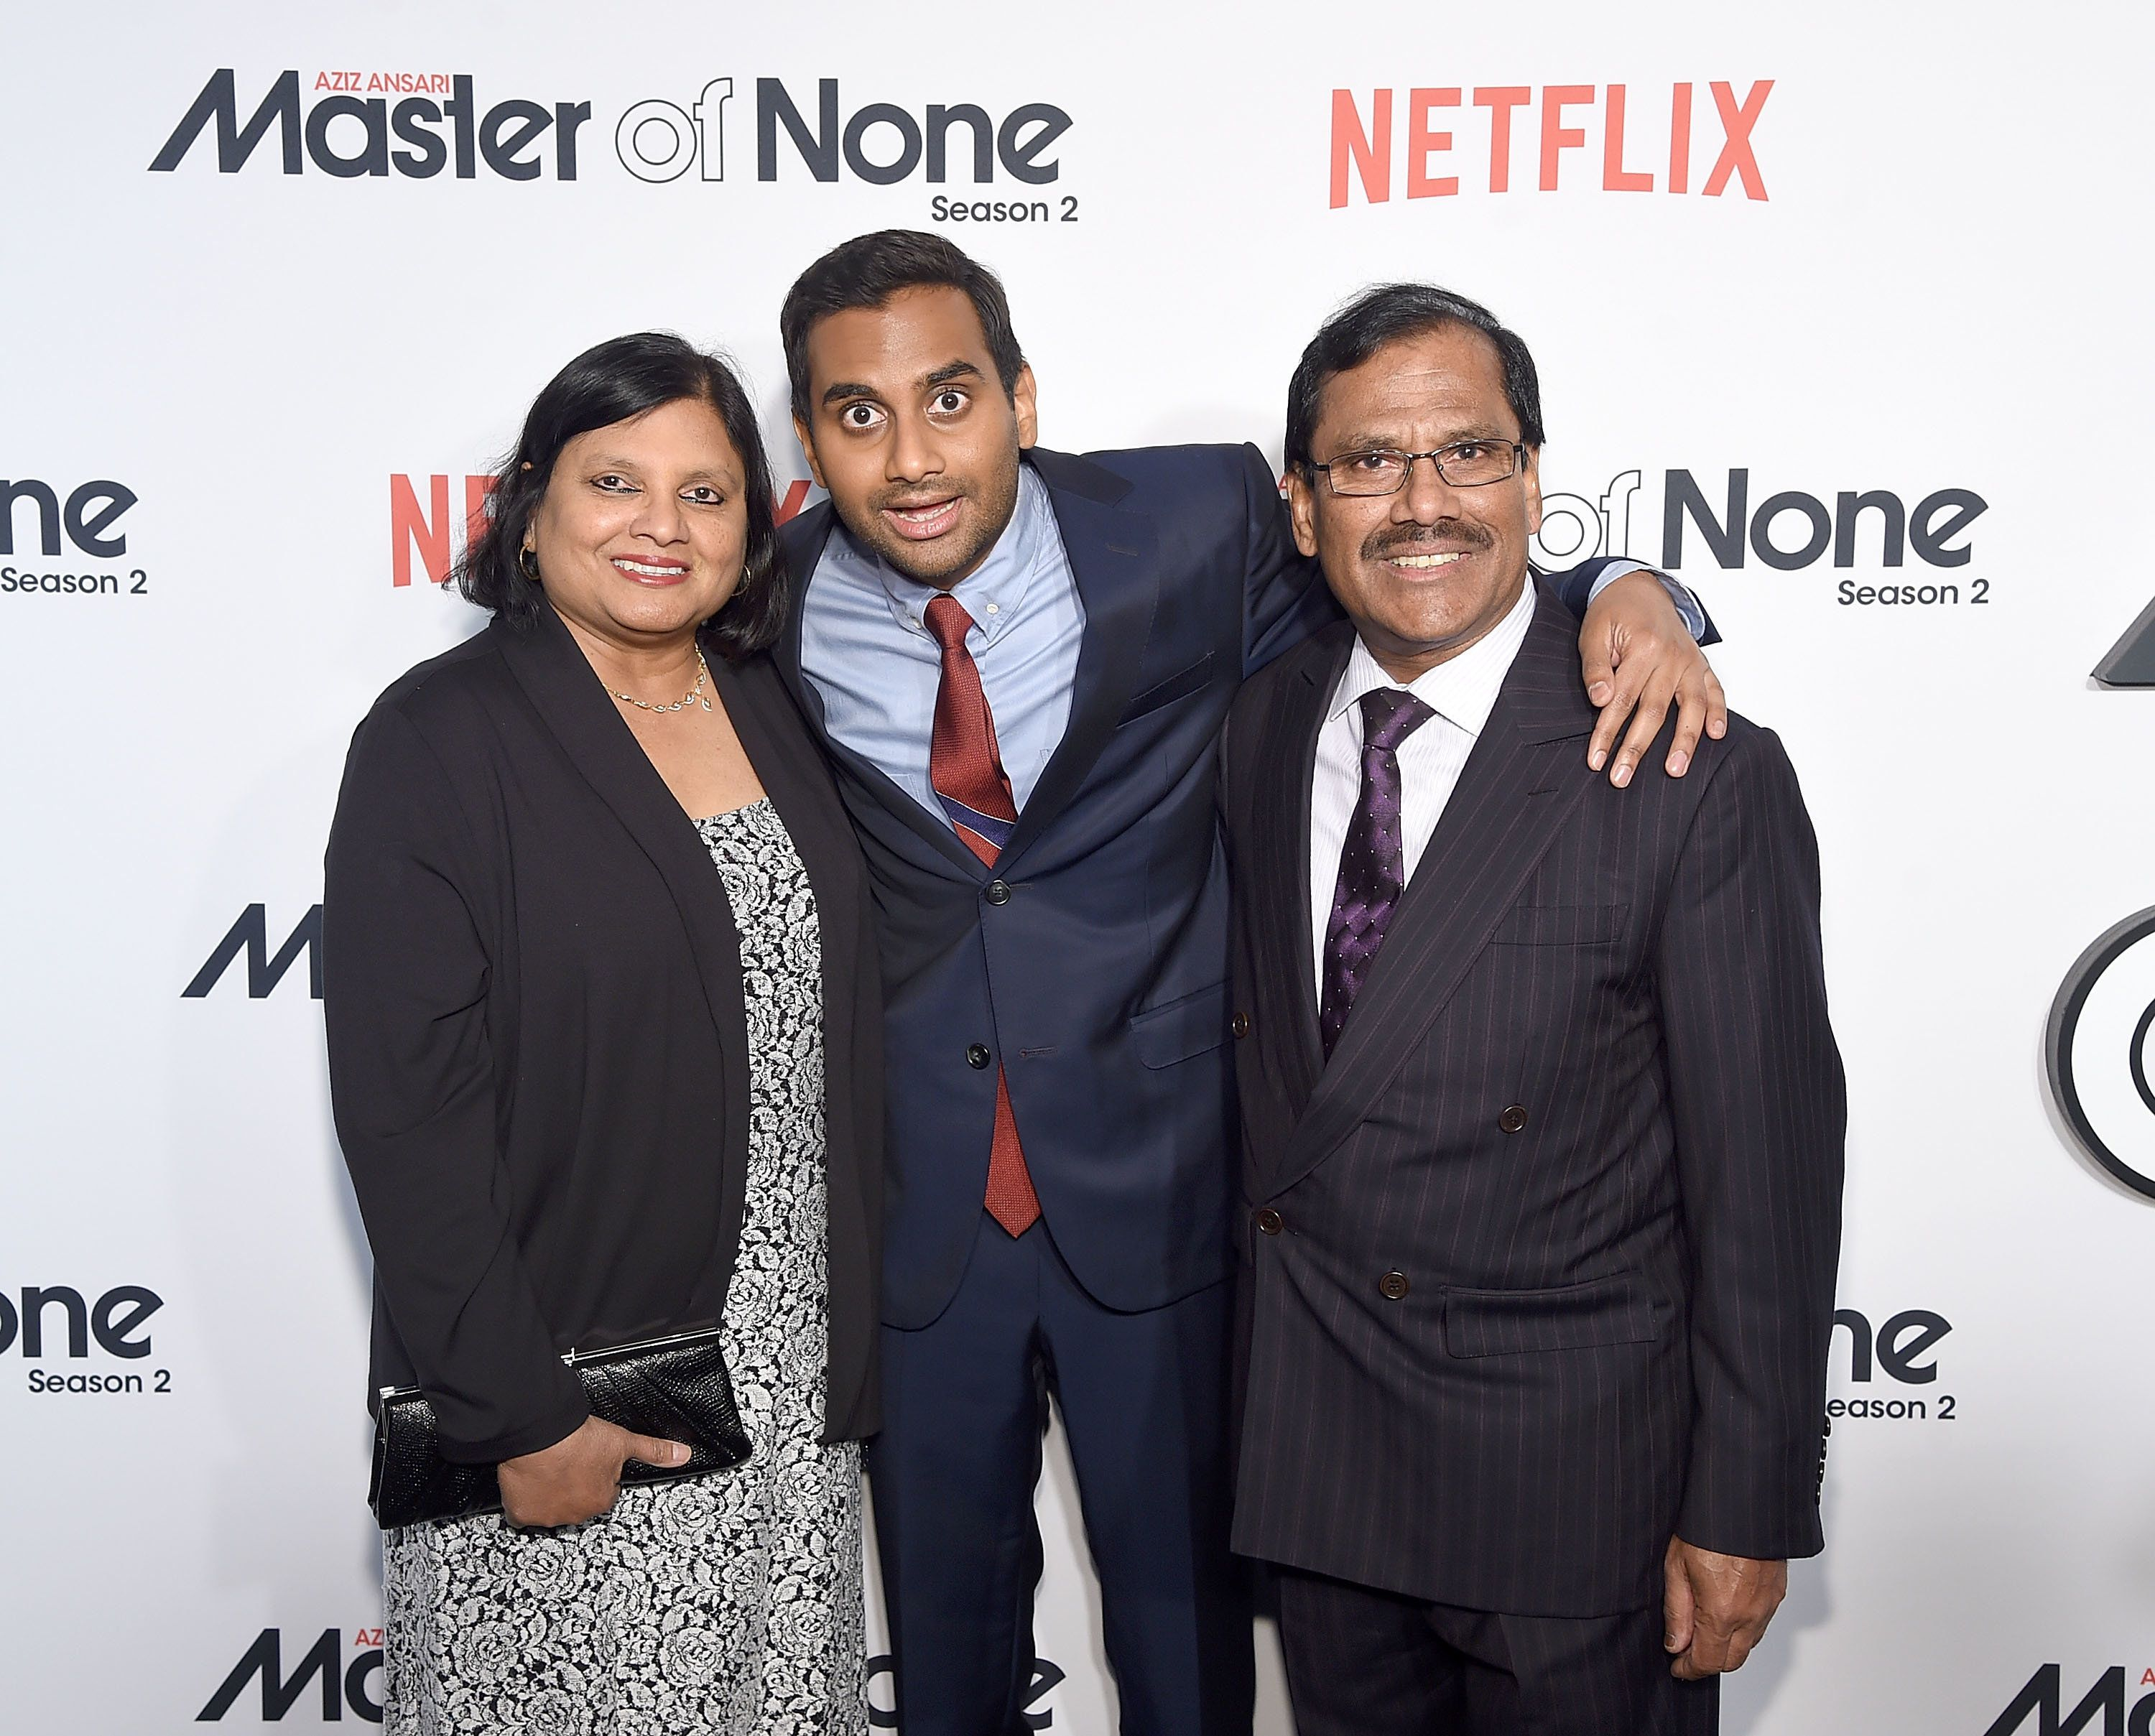 Aziz Ansari (center) with his parents Fatima Ansari and Shoukath Ansari attend the 'Master Of None' Season 2 Premiere at SVA